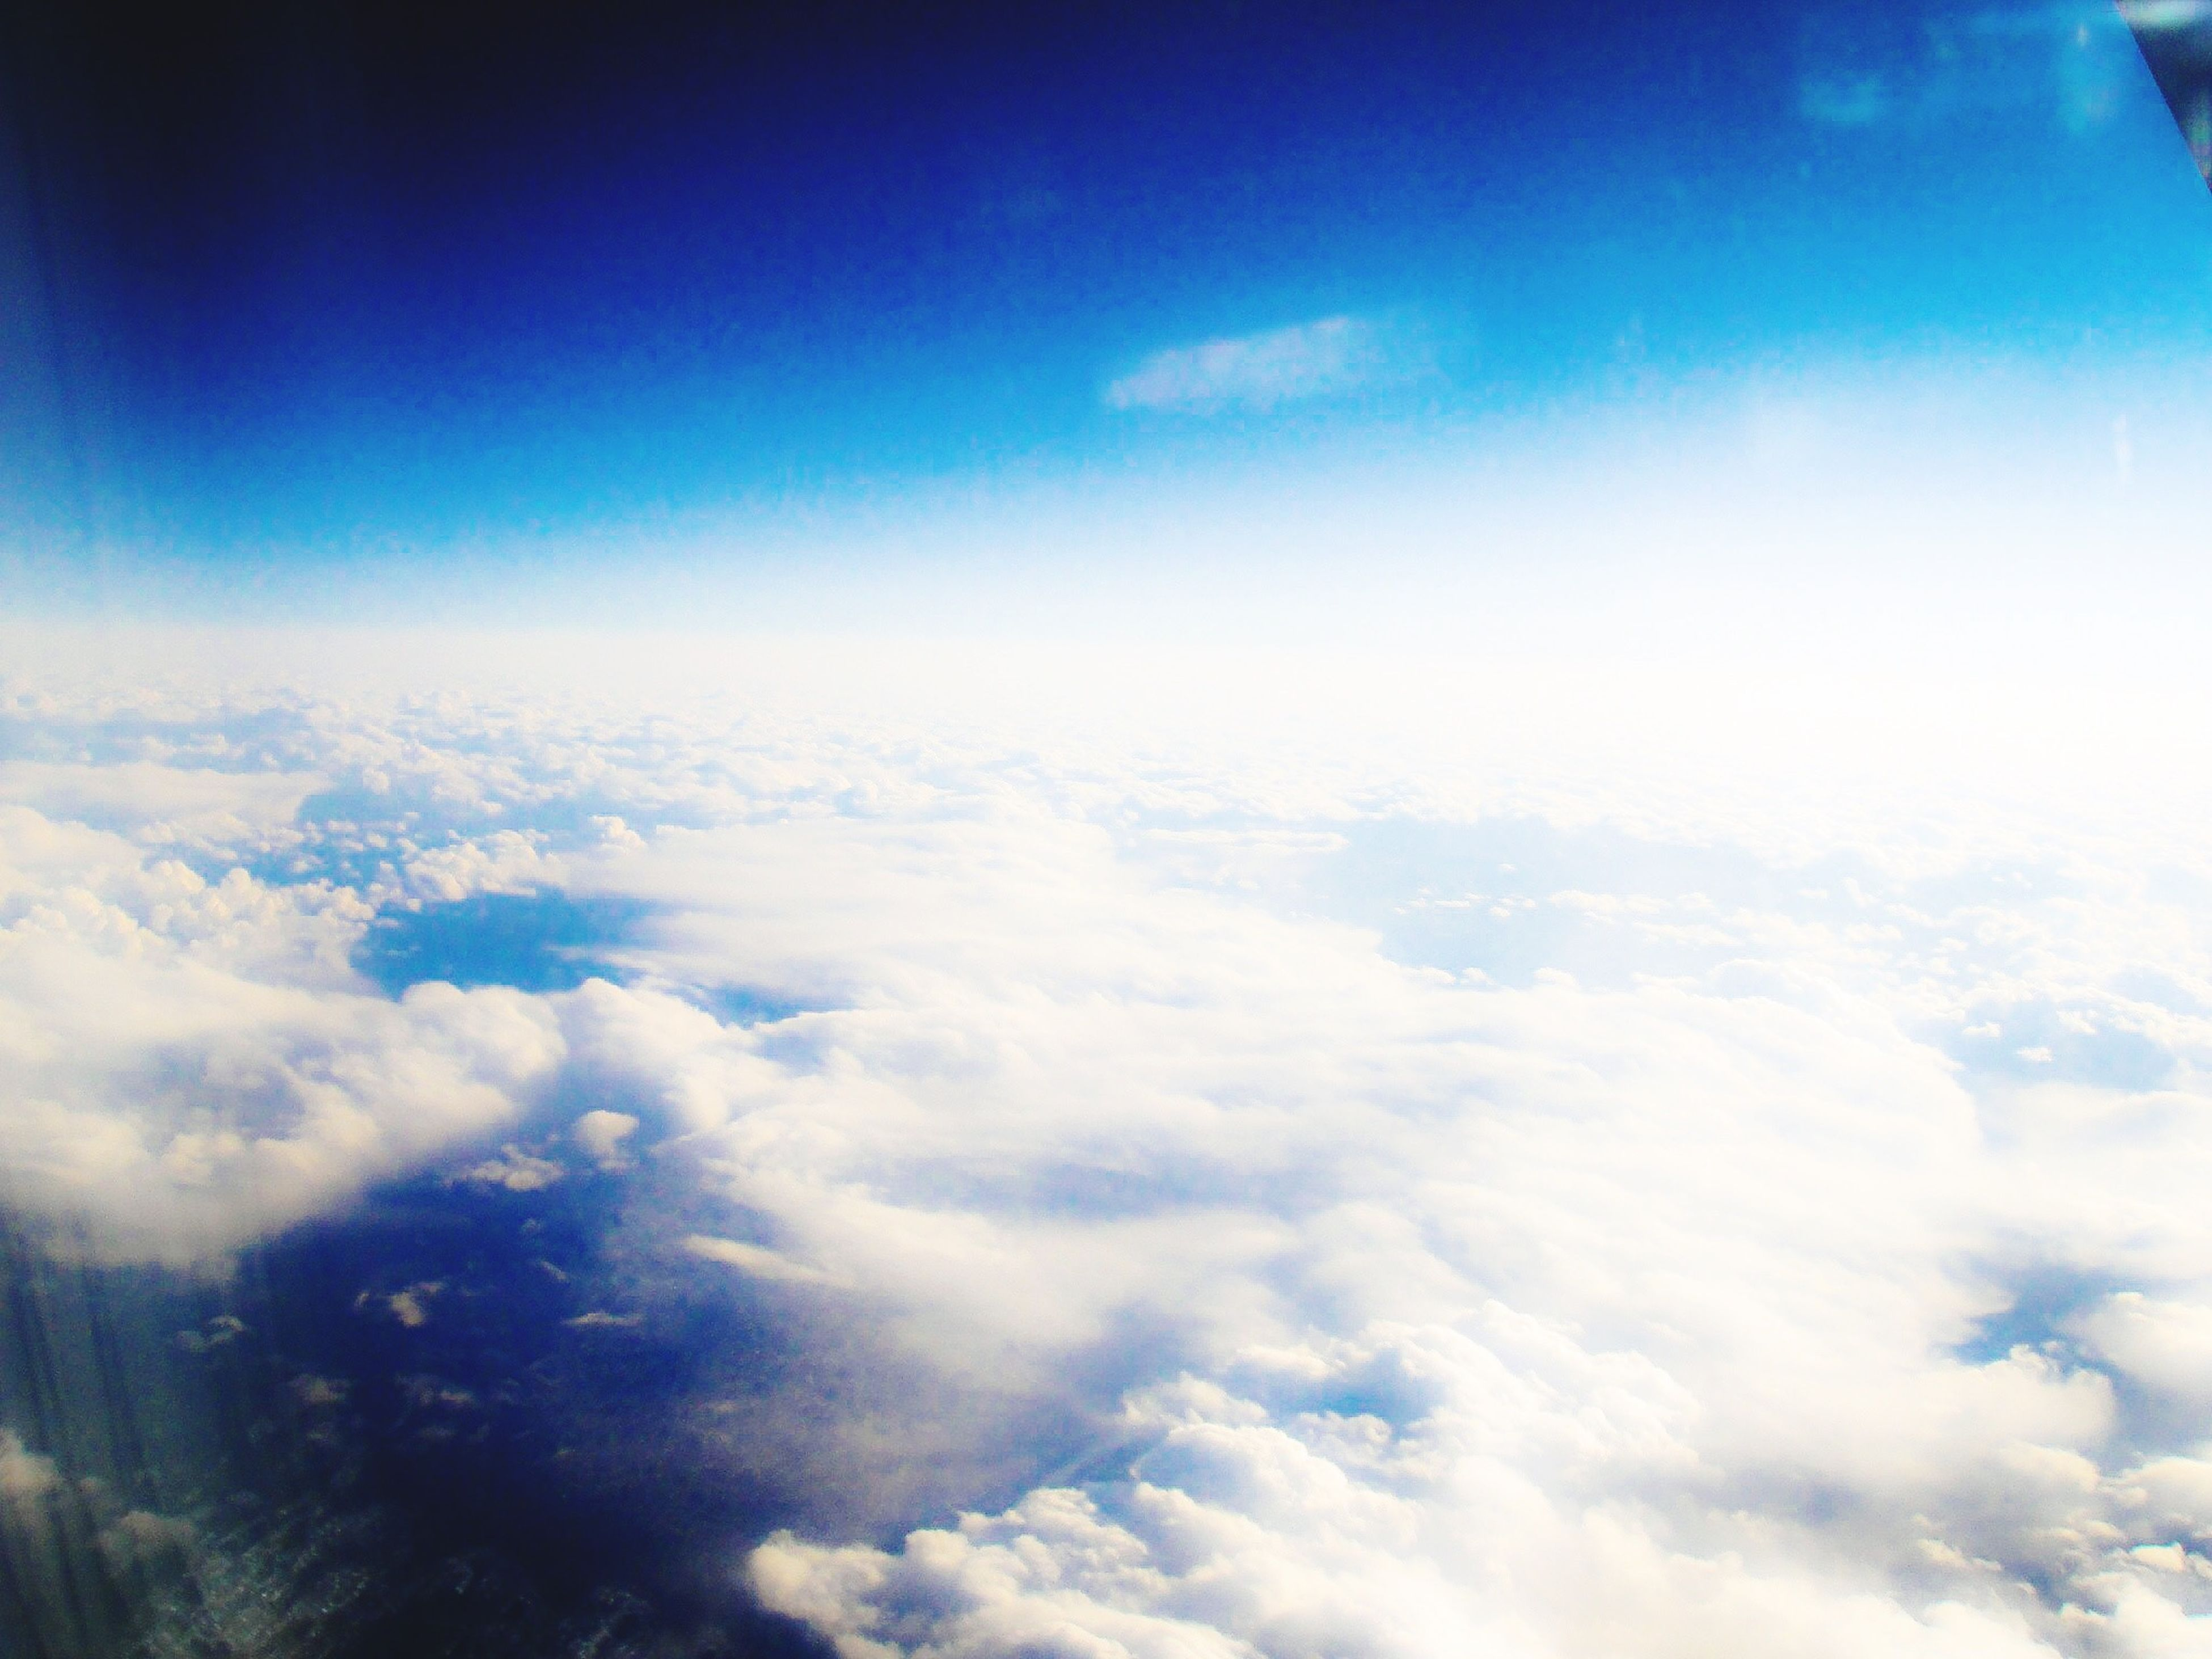 blue, sky, beauty in nature, scenics, tranquility, tranquil scene, cloud - sky, nature, sky only, cloudscape, cloud, idyllic, aerial view, backgrounds, low angle view, majestic, no people, day, outdoors, cloudy